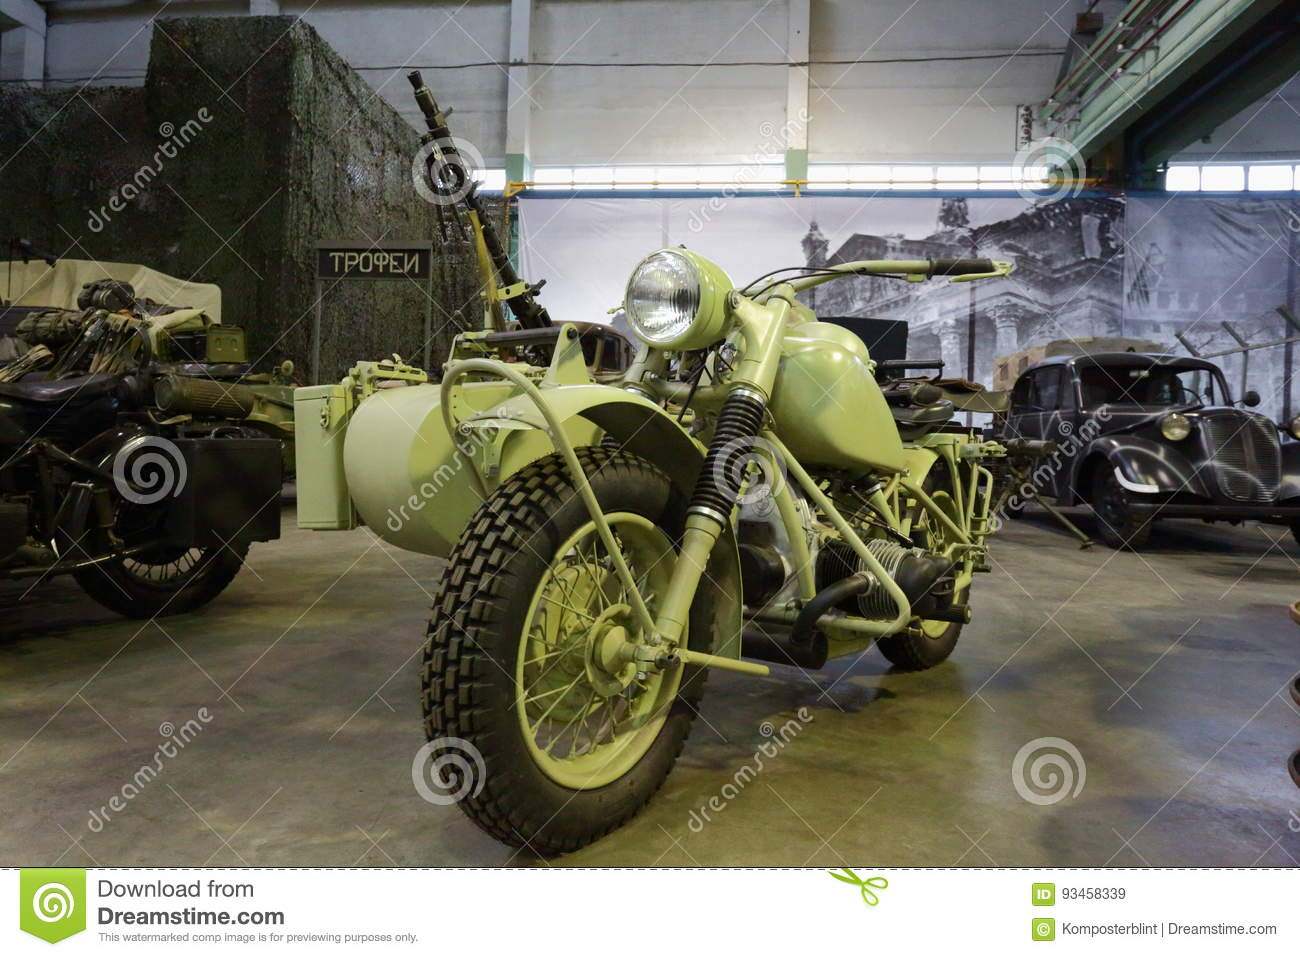 Old Motorcycle With Stroller And Machine Gun General View Editorial Stock Image Image Of Military Inside 93458339